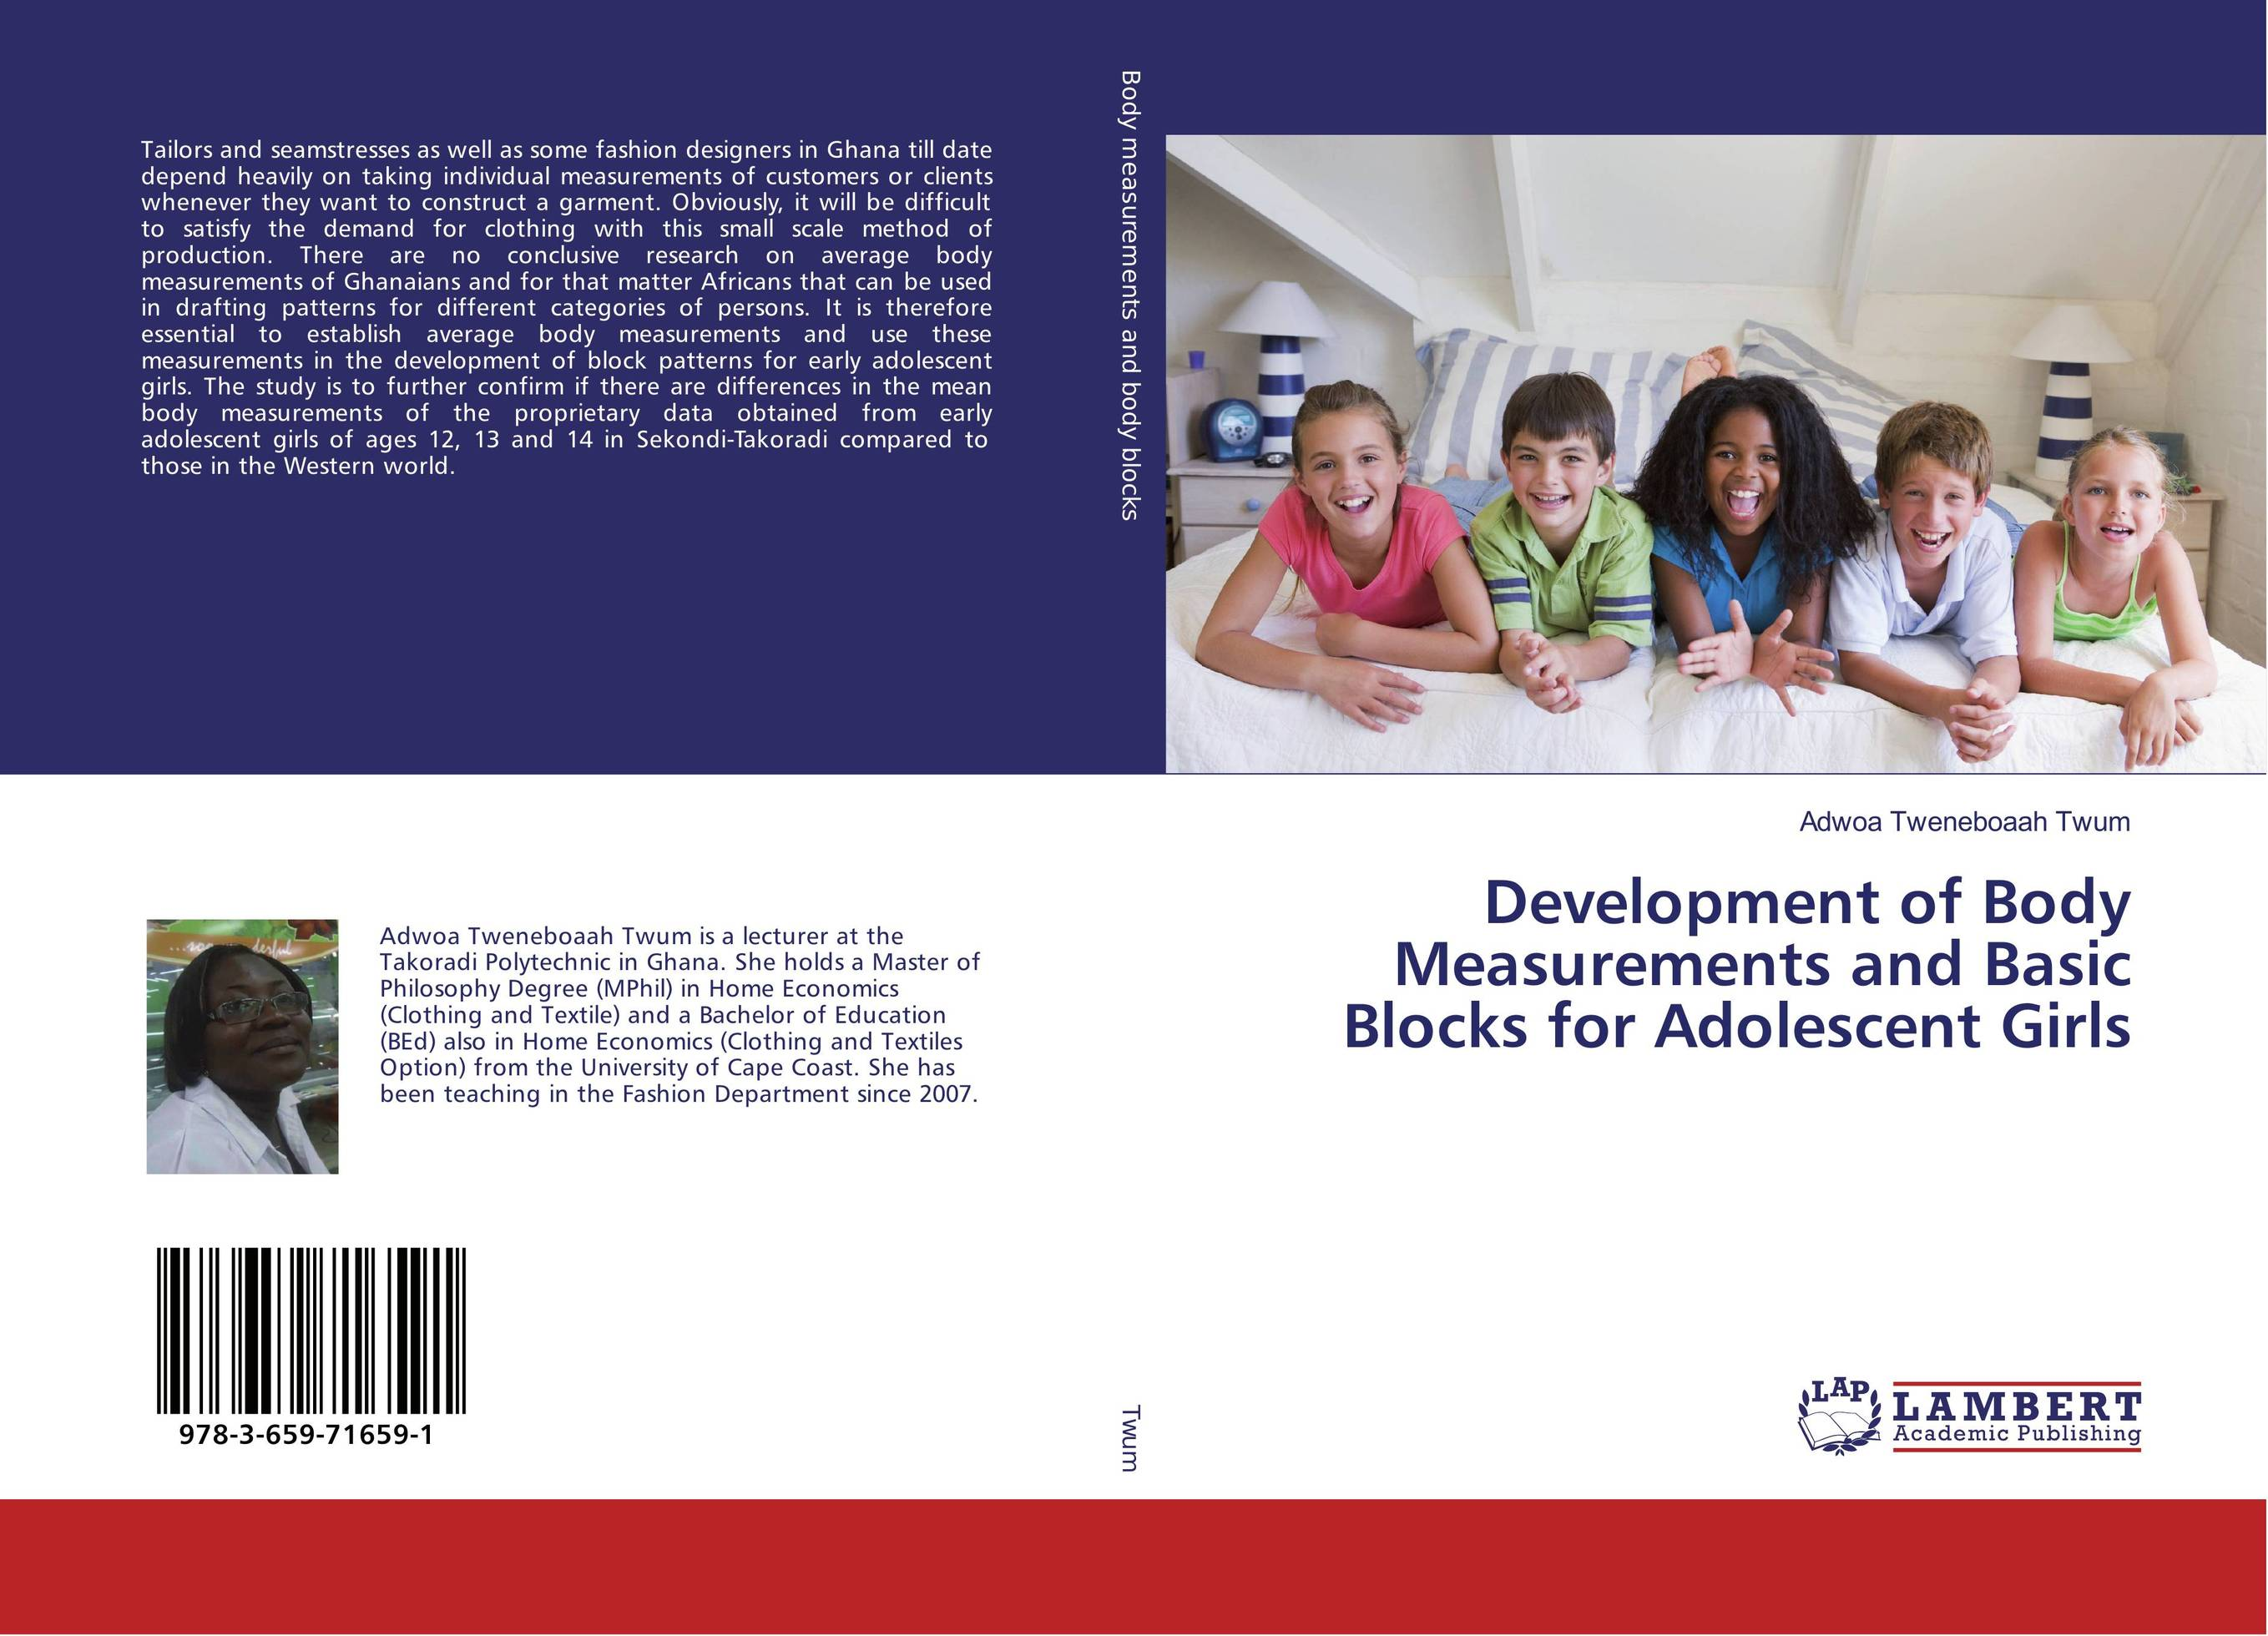 Development of Body Measurements and Basic Blocks for Adolescent Girls